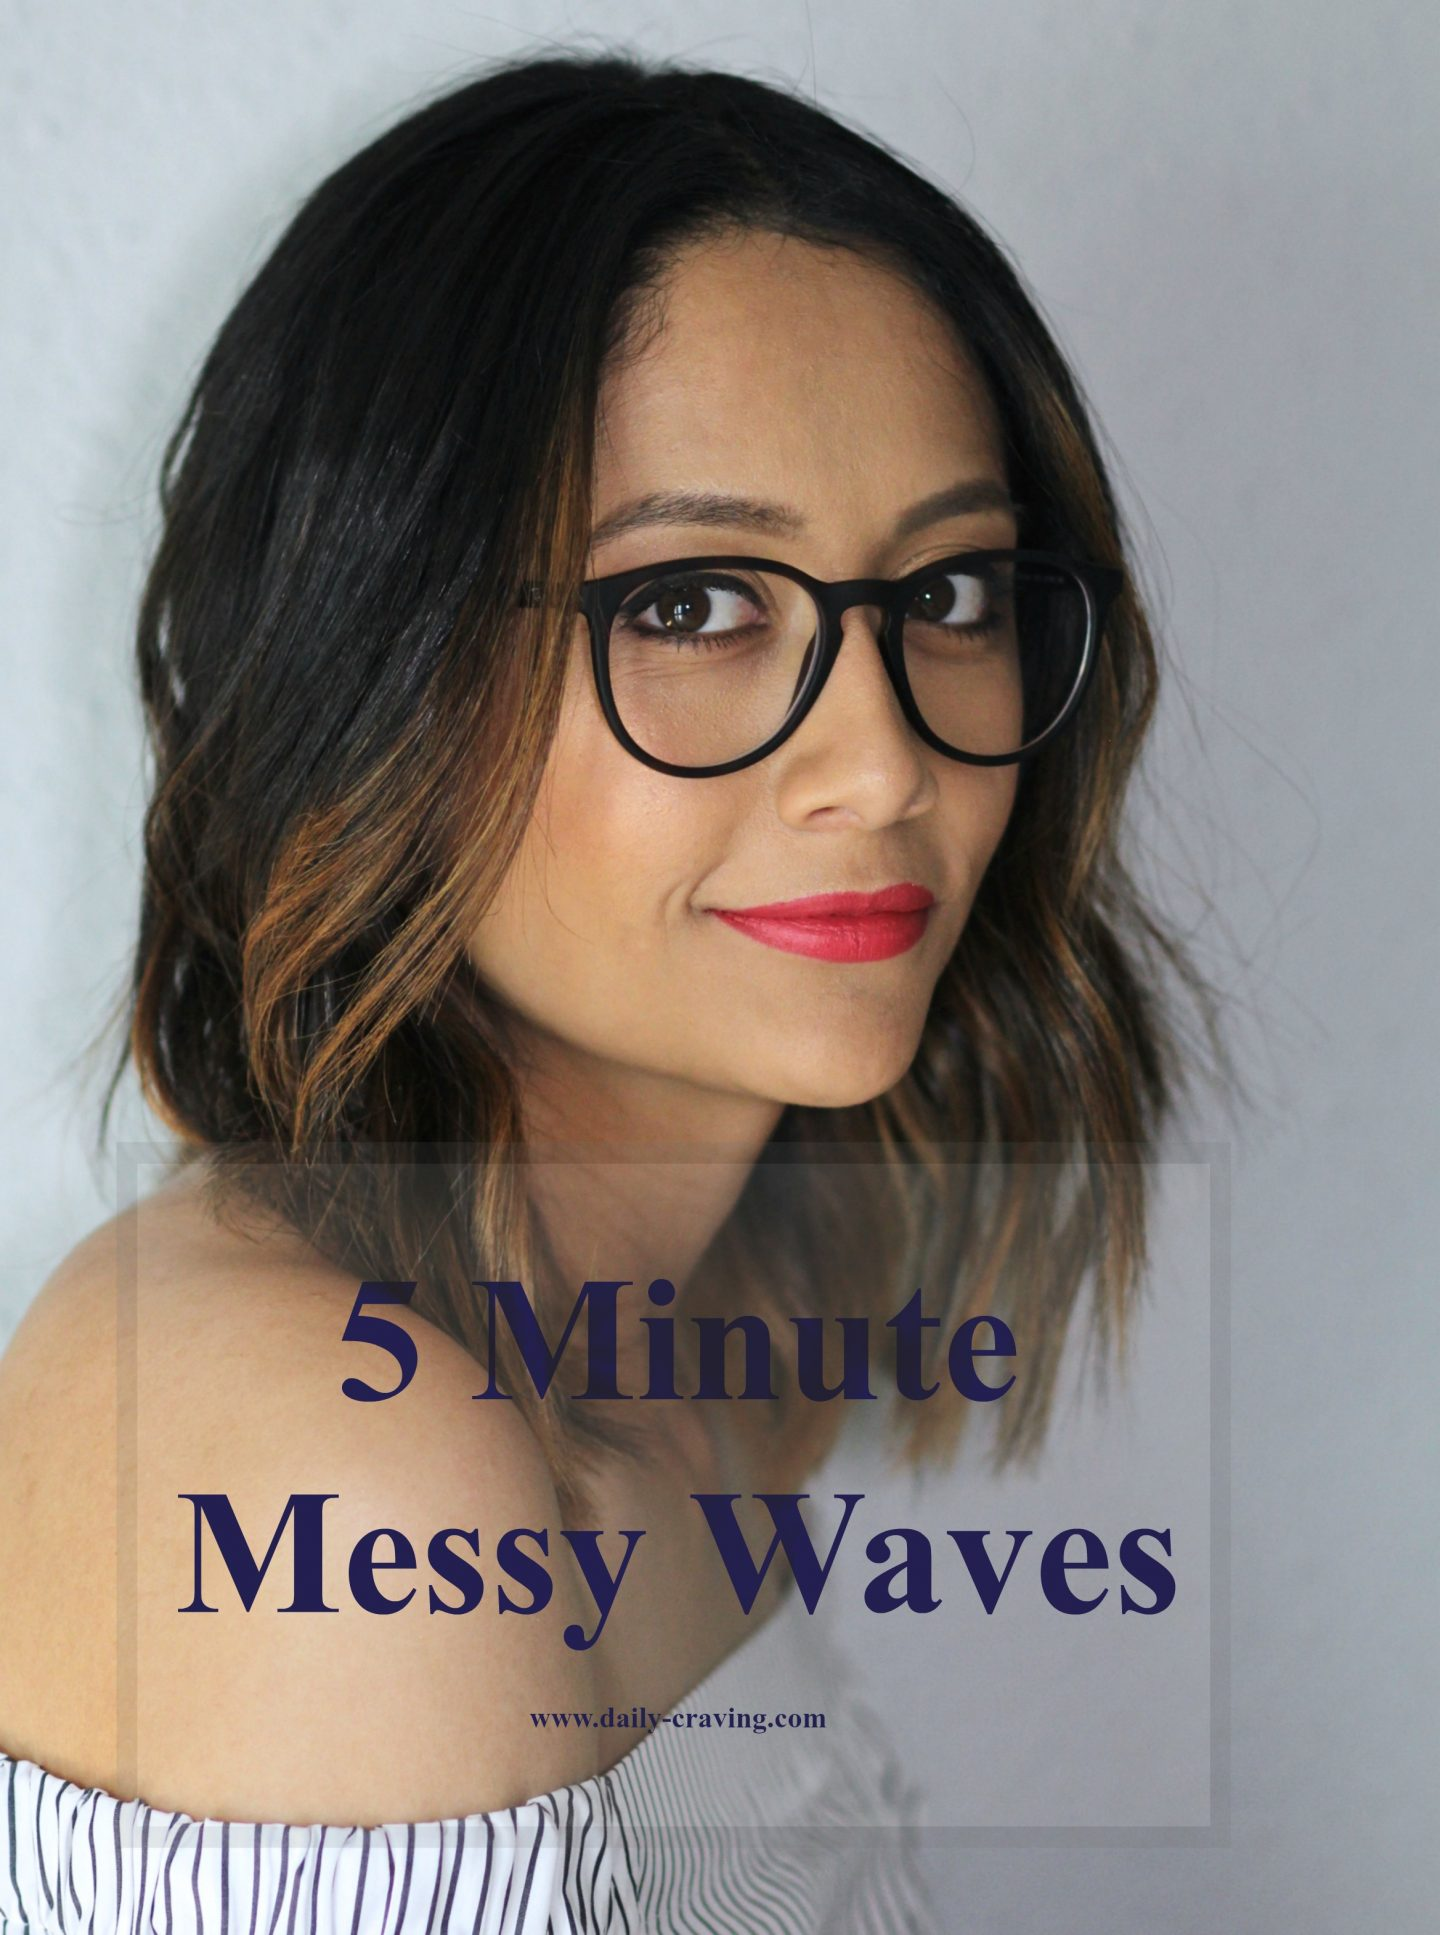 5 Minute Messy Waves